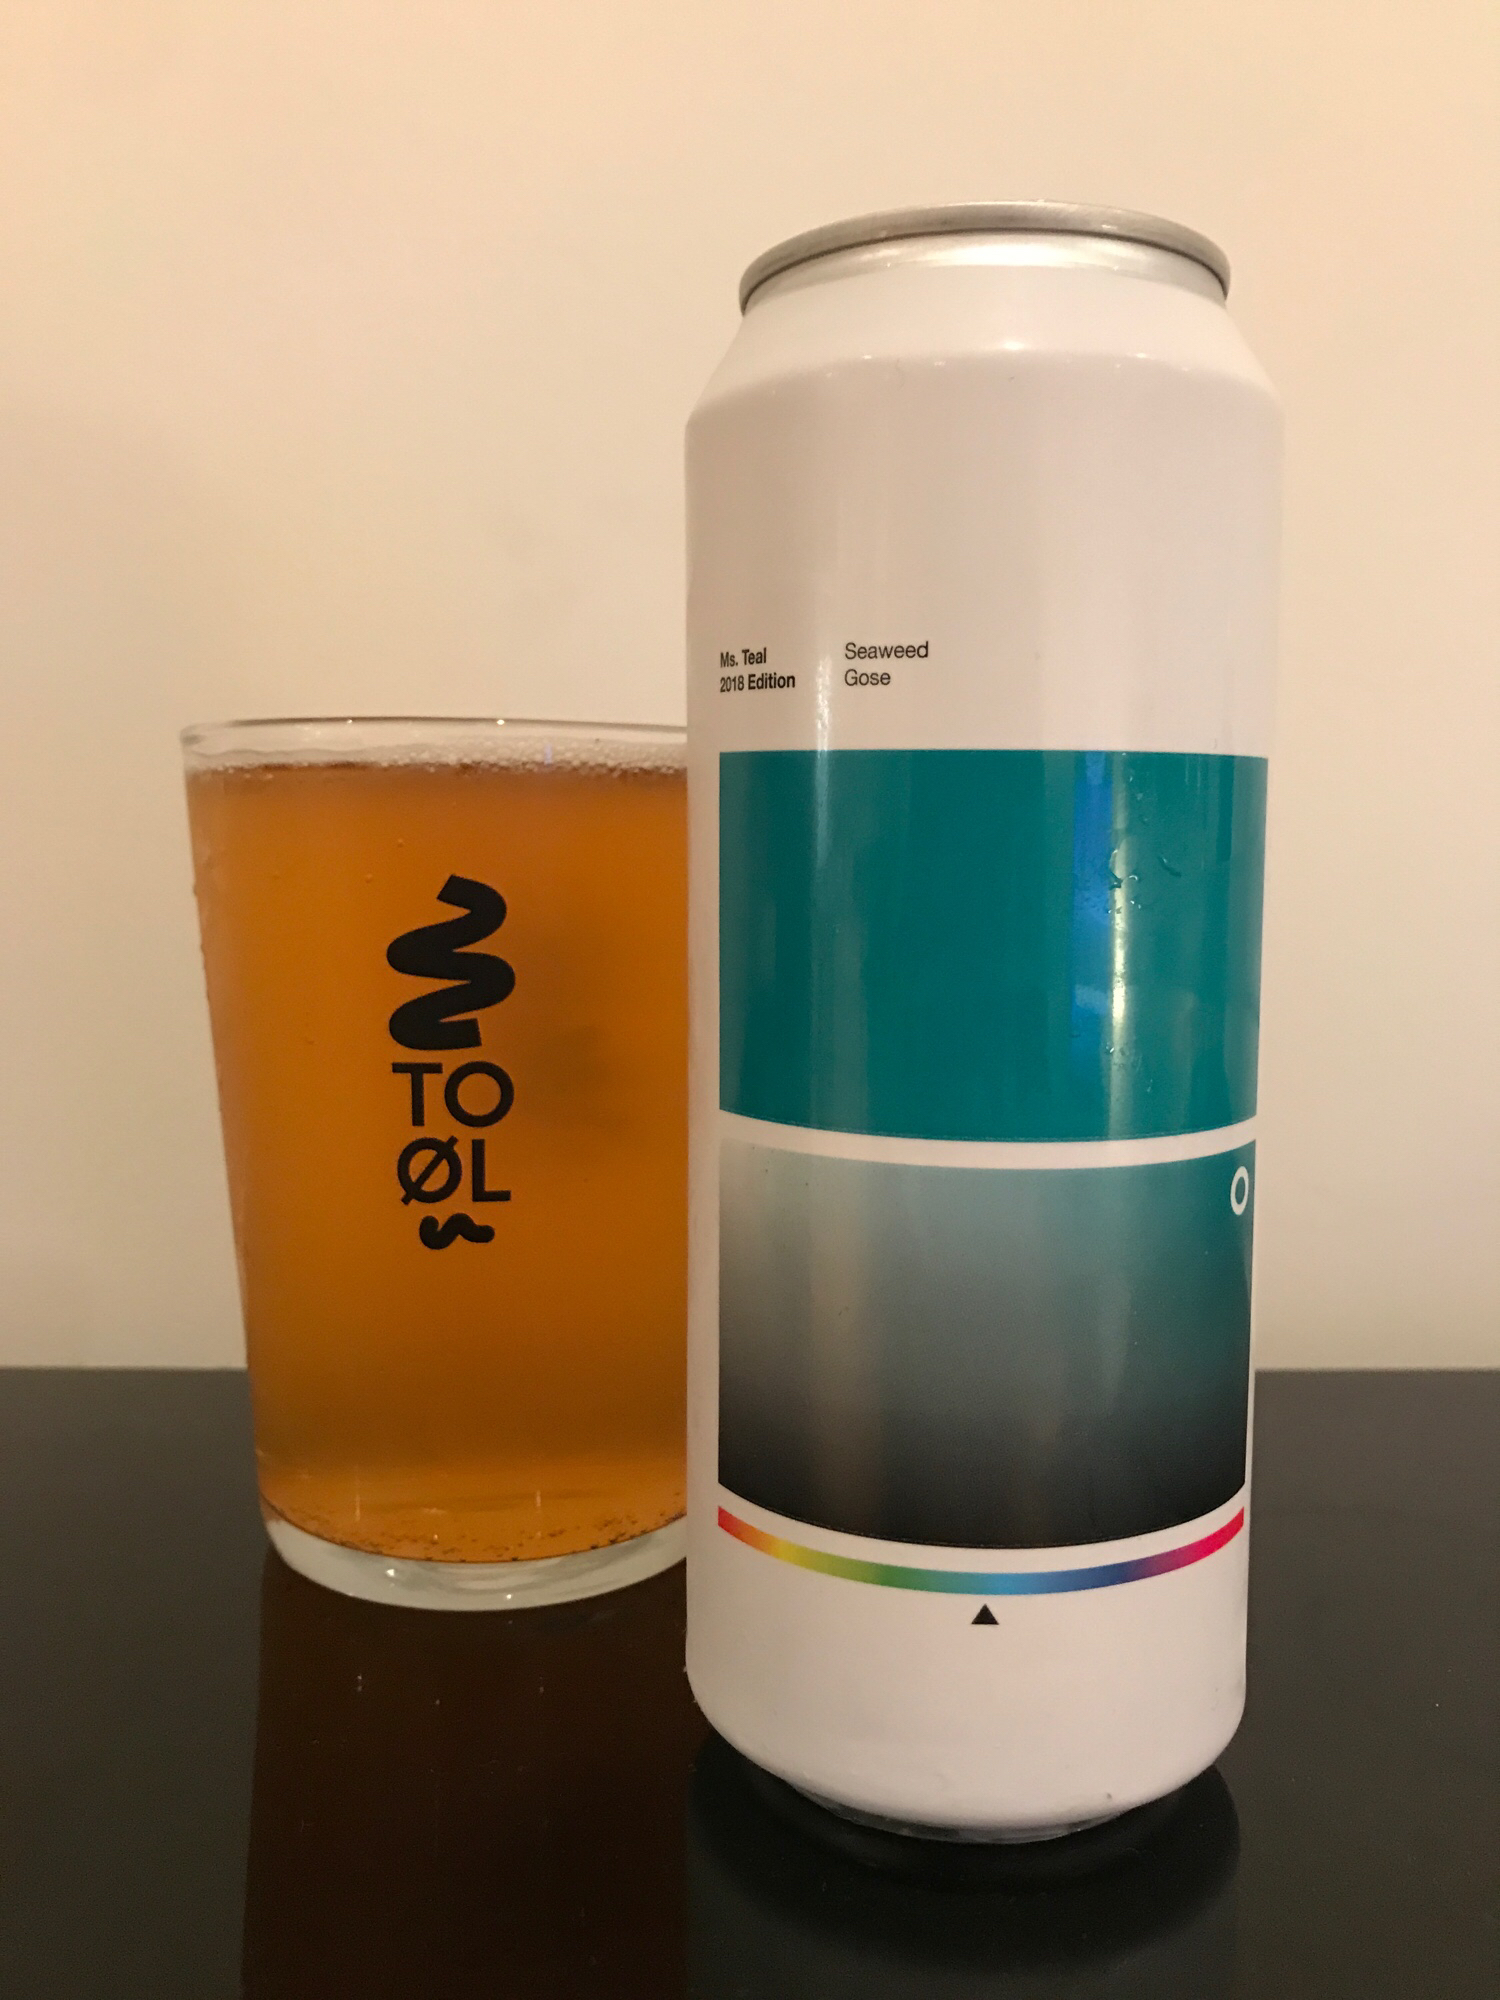 Ms. Teal // Seaweed Gose 4.5% - Expectations: Can I shock you? I've actually had a sea-based gose before. The green beer in 2016's Rainbow Project. 2016 me was not a fan at all but I've embraced sour beer like a long lost relative and feel slightly more optimistic for Ms. Teal. Saltiness is to be expected in a gose so I'm hoping the seaweed doesn't make it super brackish. To Øl made one of the first gose beers I ever tasted (Gose to Hollywood) which really opened my eyes to sours so I hope this is equally as good as that.Reality: Bang on with this tart little bastard. It's light and salty and sour and everything a gose should be. I thought it might be overwhelmingly salty but it's really well balanced. I've had a lot of sours over the last few years and this is right up there as one of the best. It just does everything it should very well and doesn't try to be anything more than the sum of its parts.I had always pegged To Øl as a brewery that made really good pale ales and imperial stouts but I'm going to have to add sours to that list now.